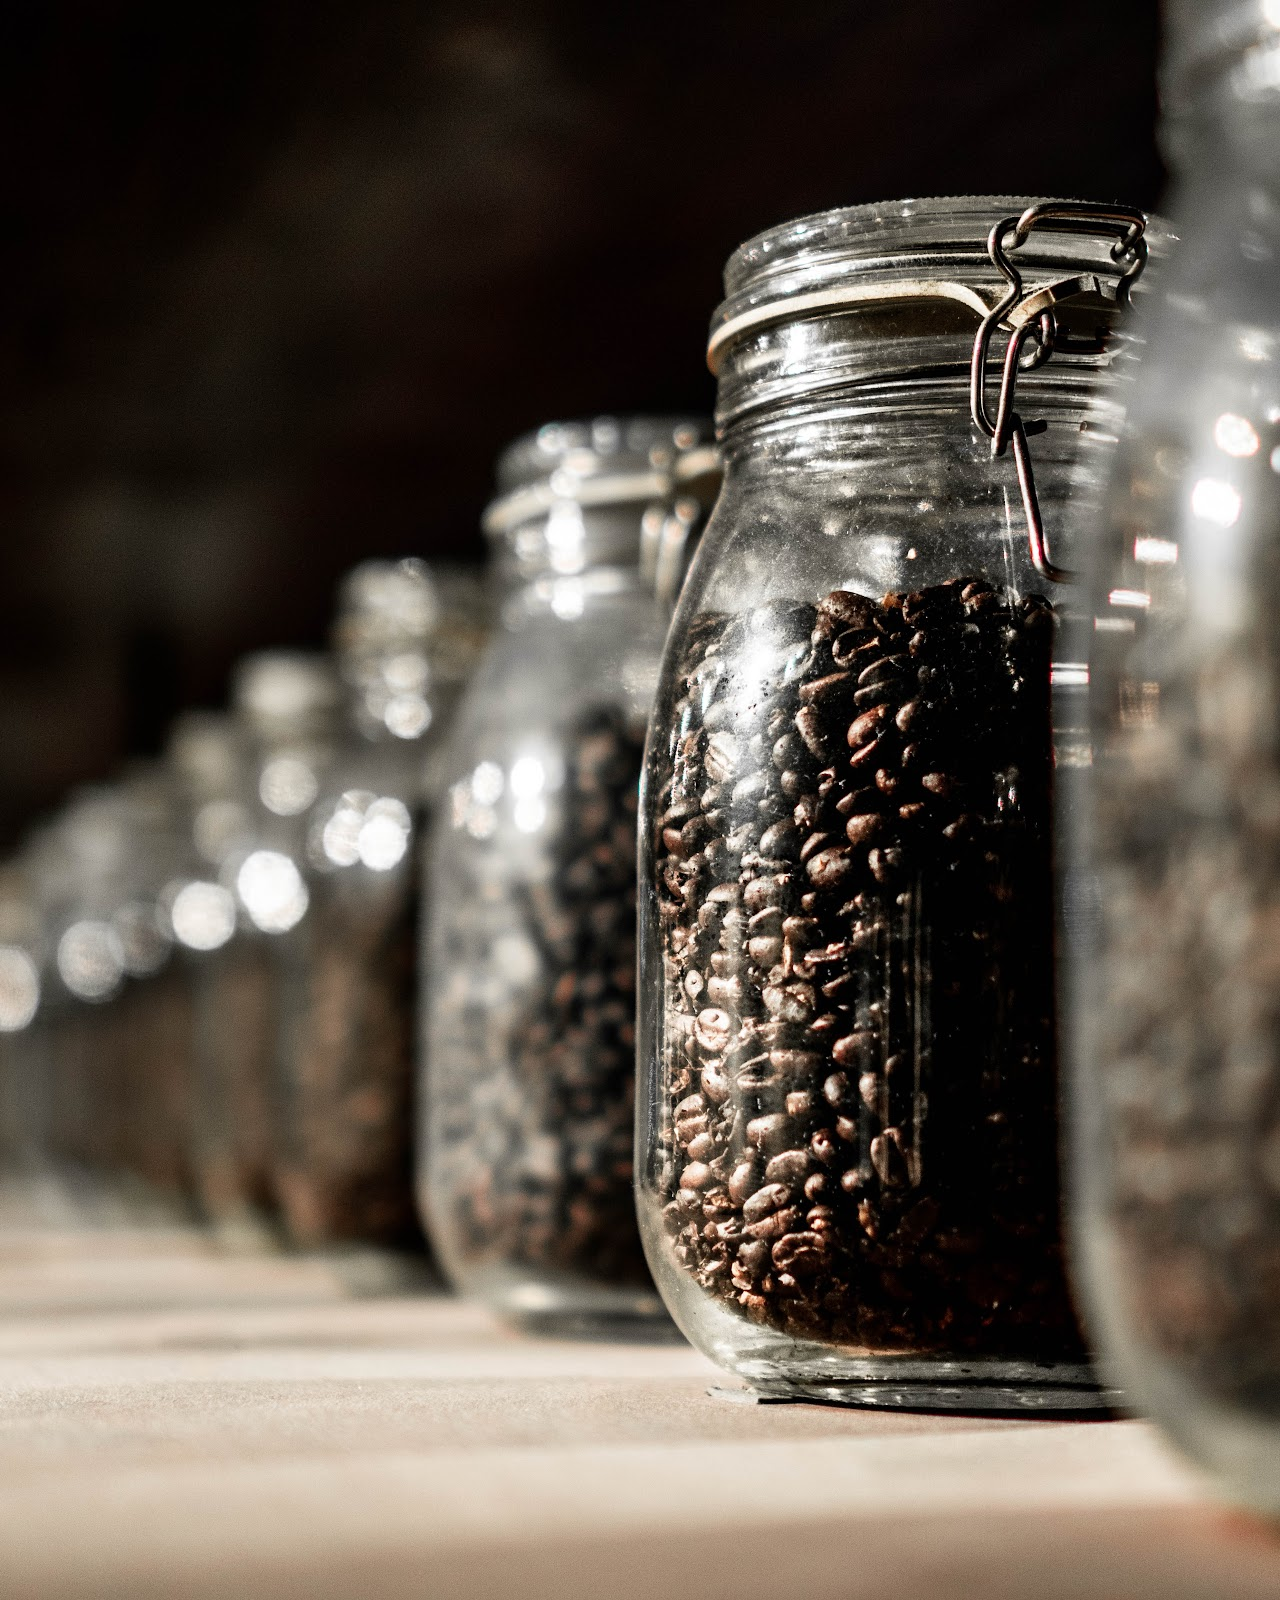 Jars of roasted coffee beans